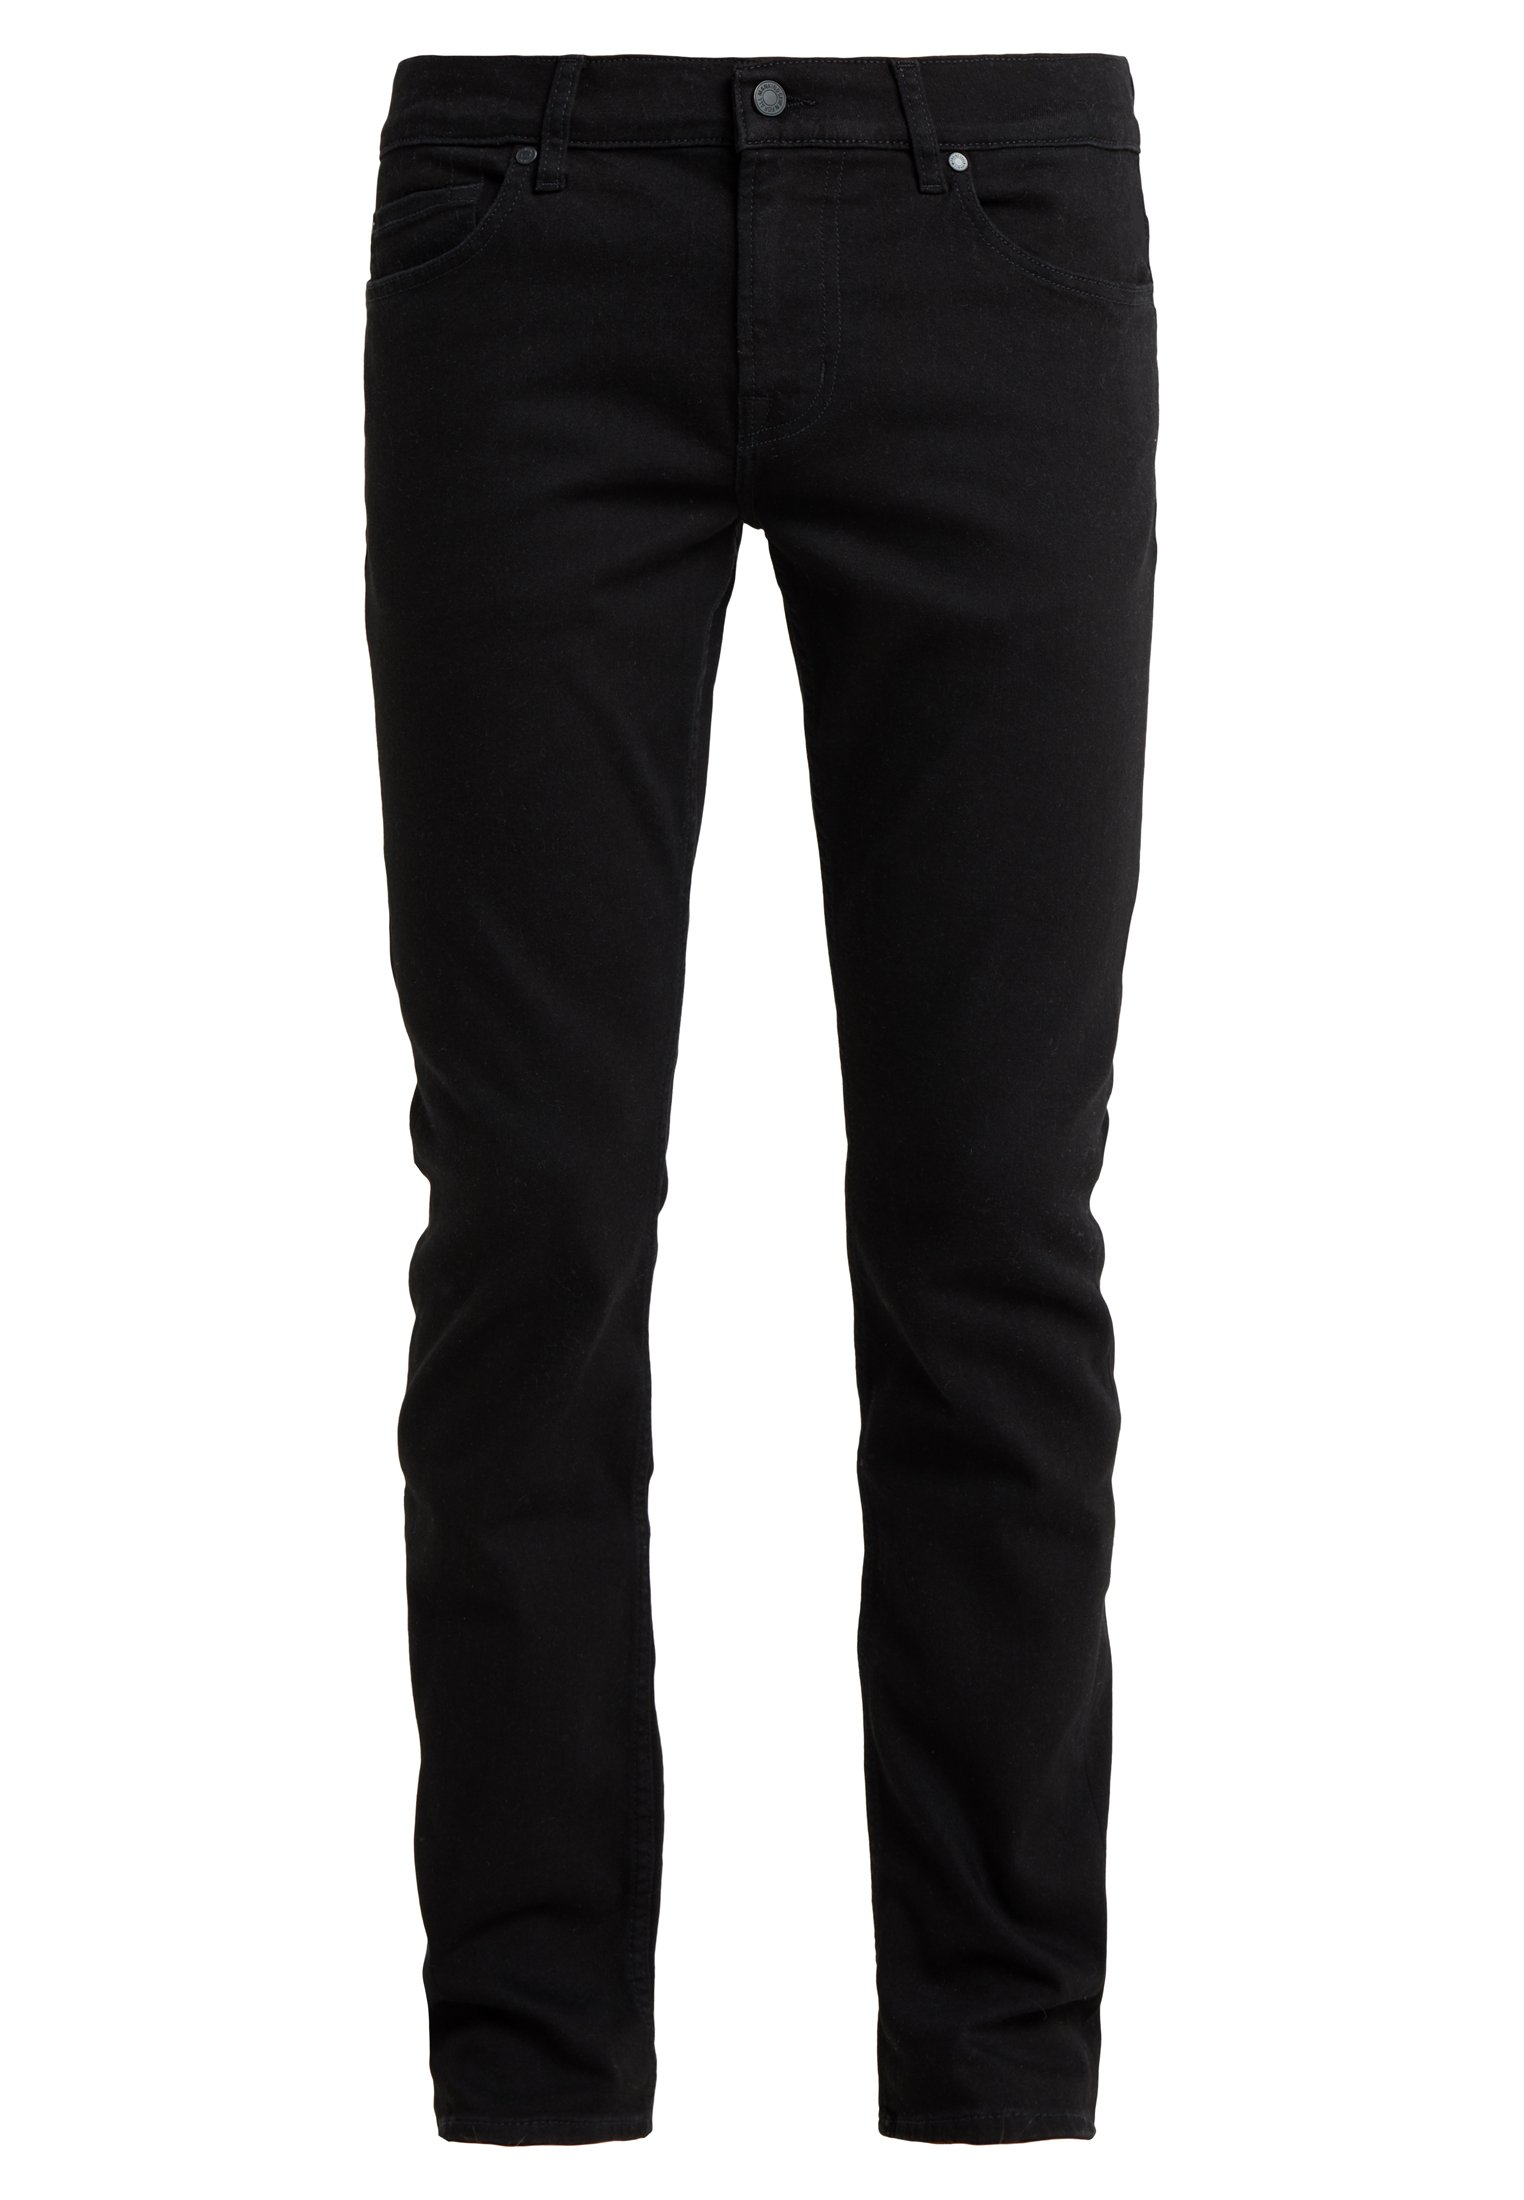 7 for all mankind RONNIE - Jeans Skinny - black